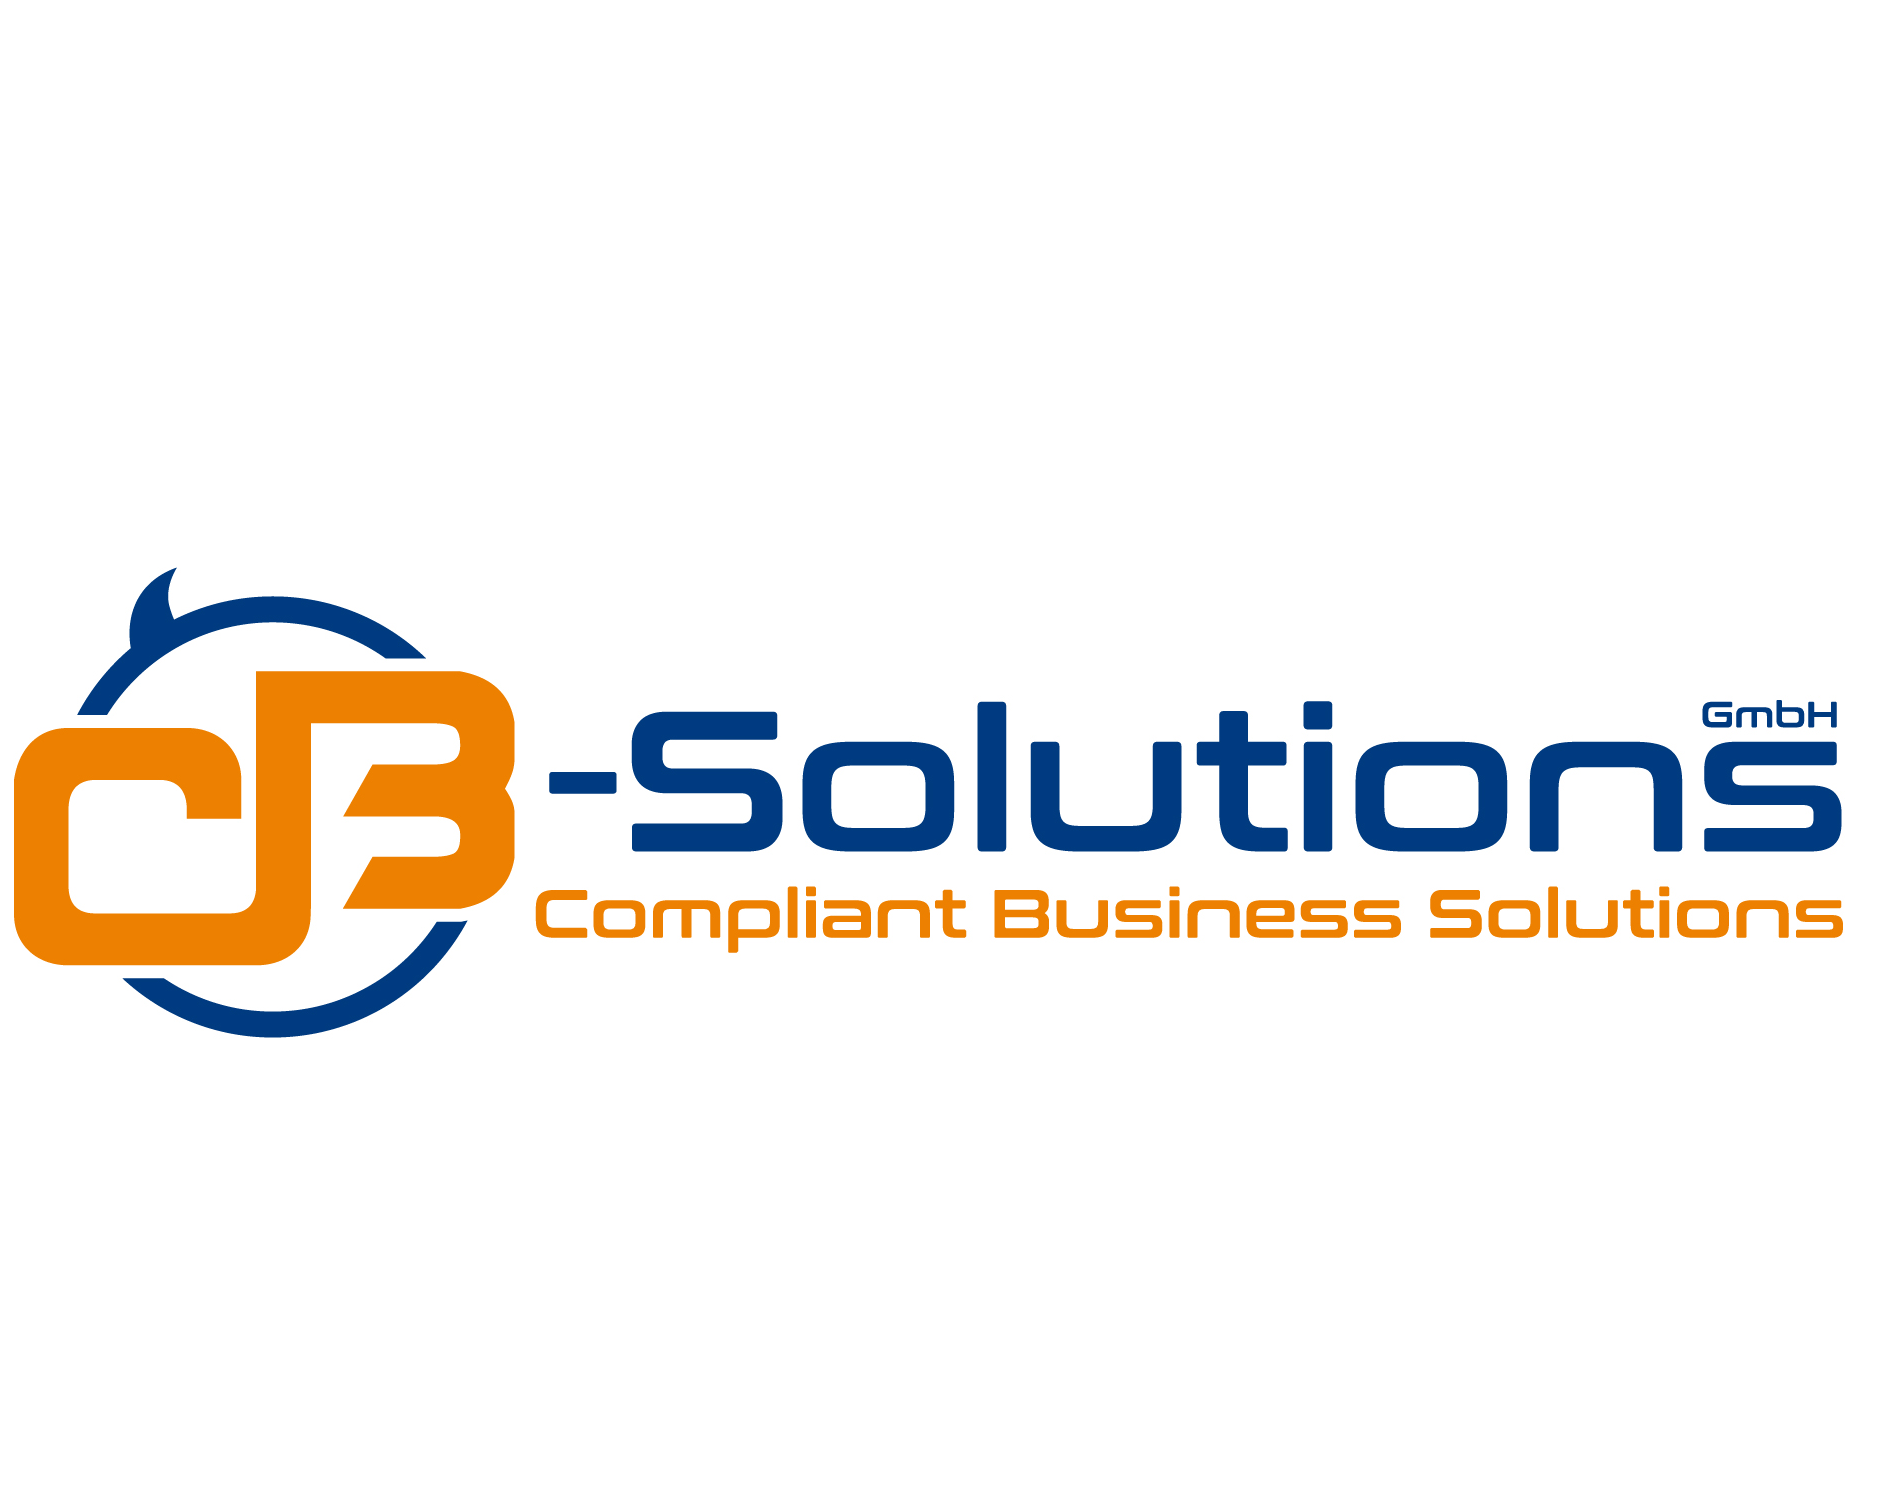 Compliant Business solutions